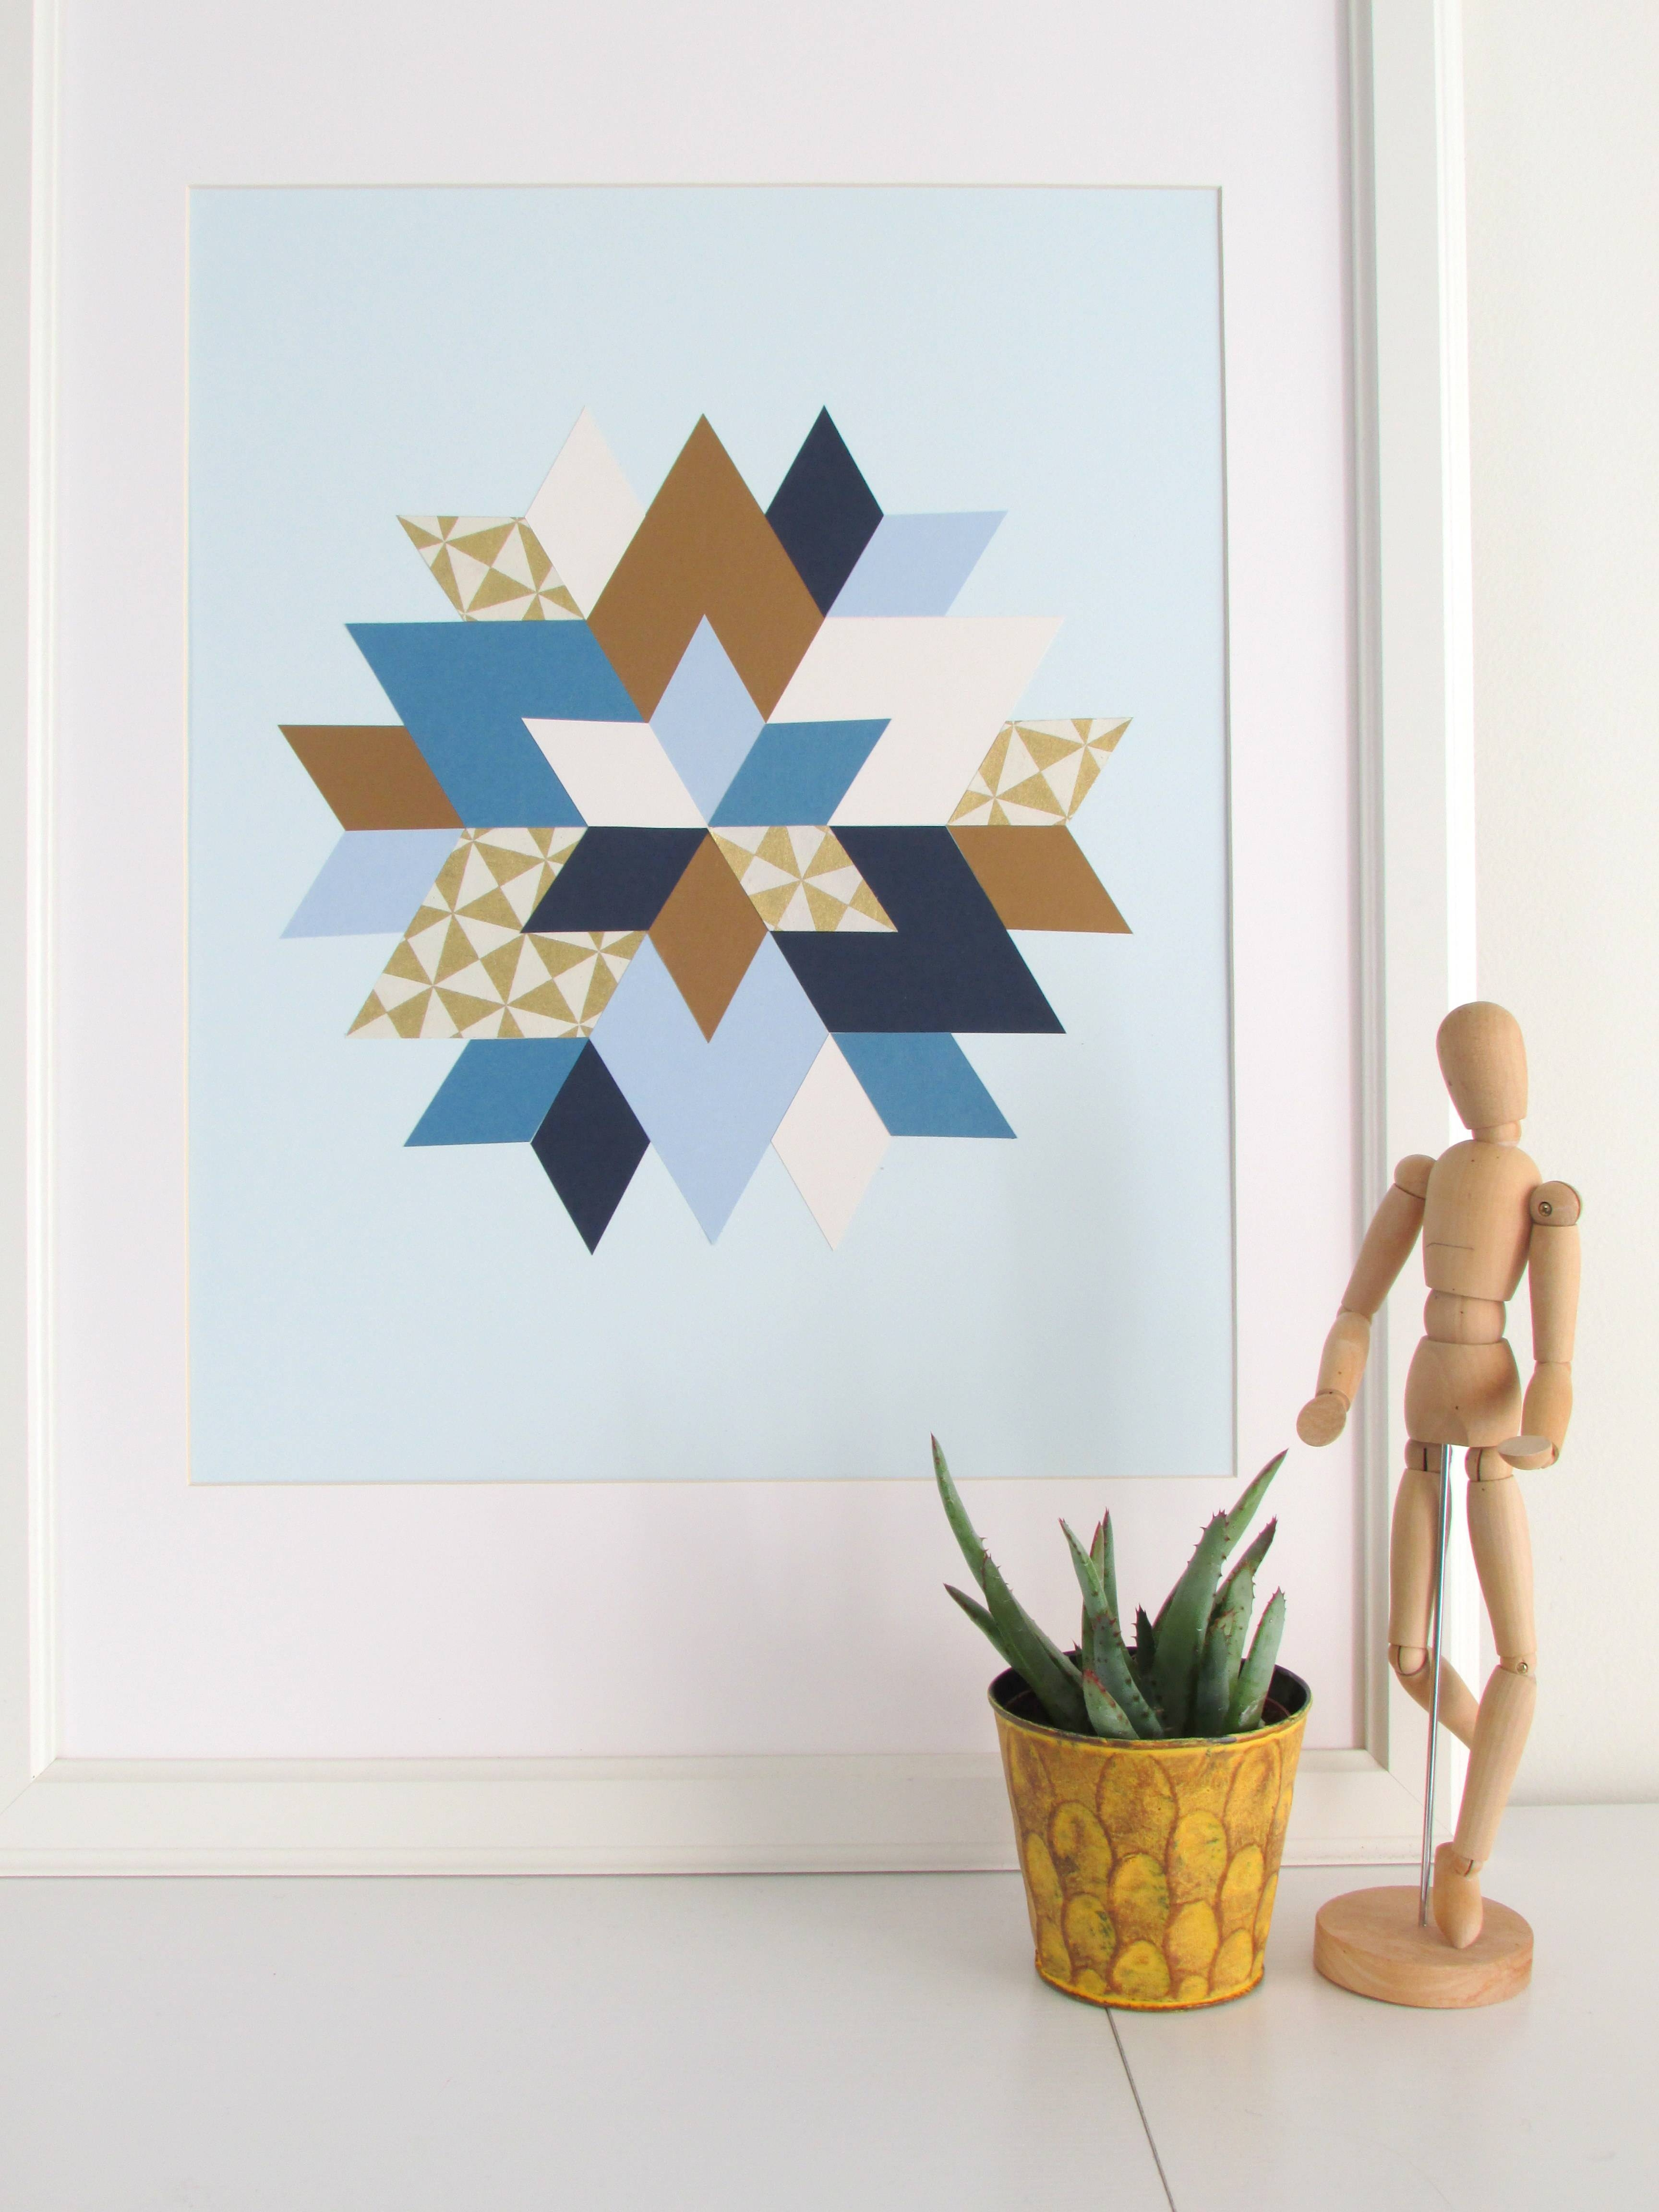 Kaleidoscope Inspired Paper Art – Francois Et Moi With Regard To 2018 Kaleidoscope Wall Art (View 14 of 20)